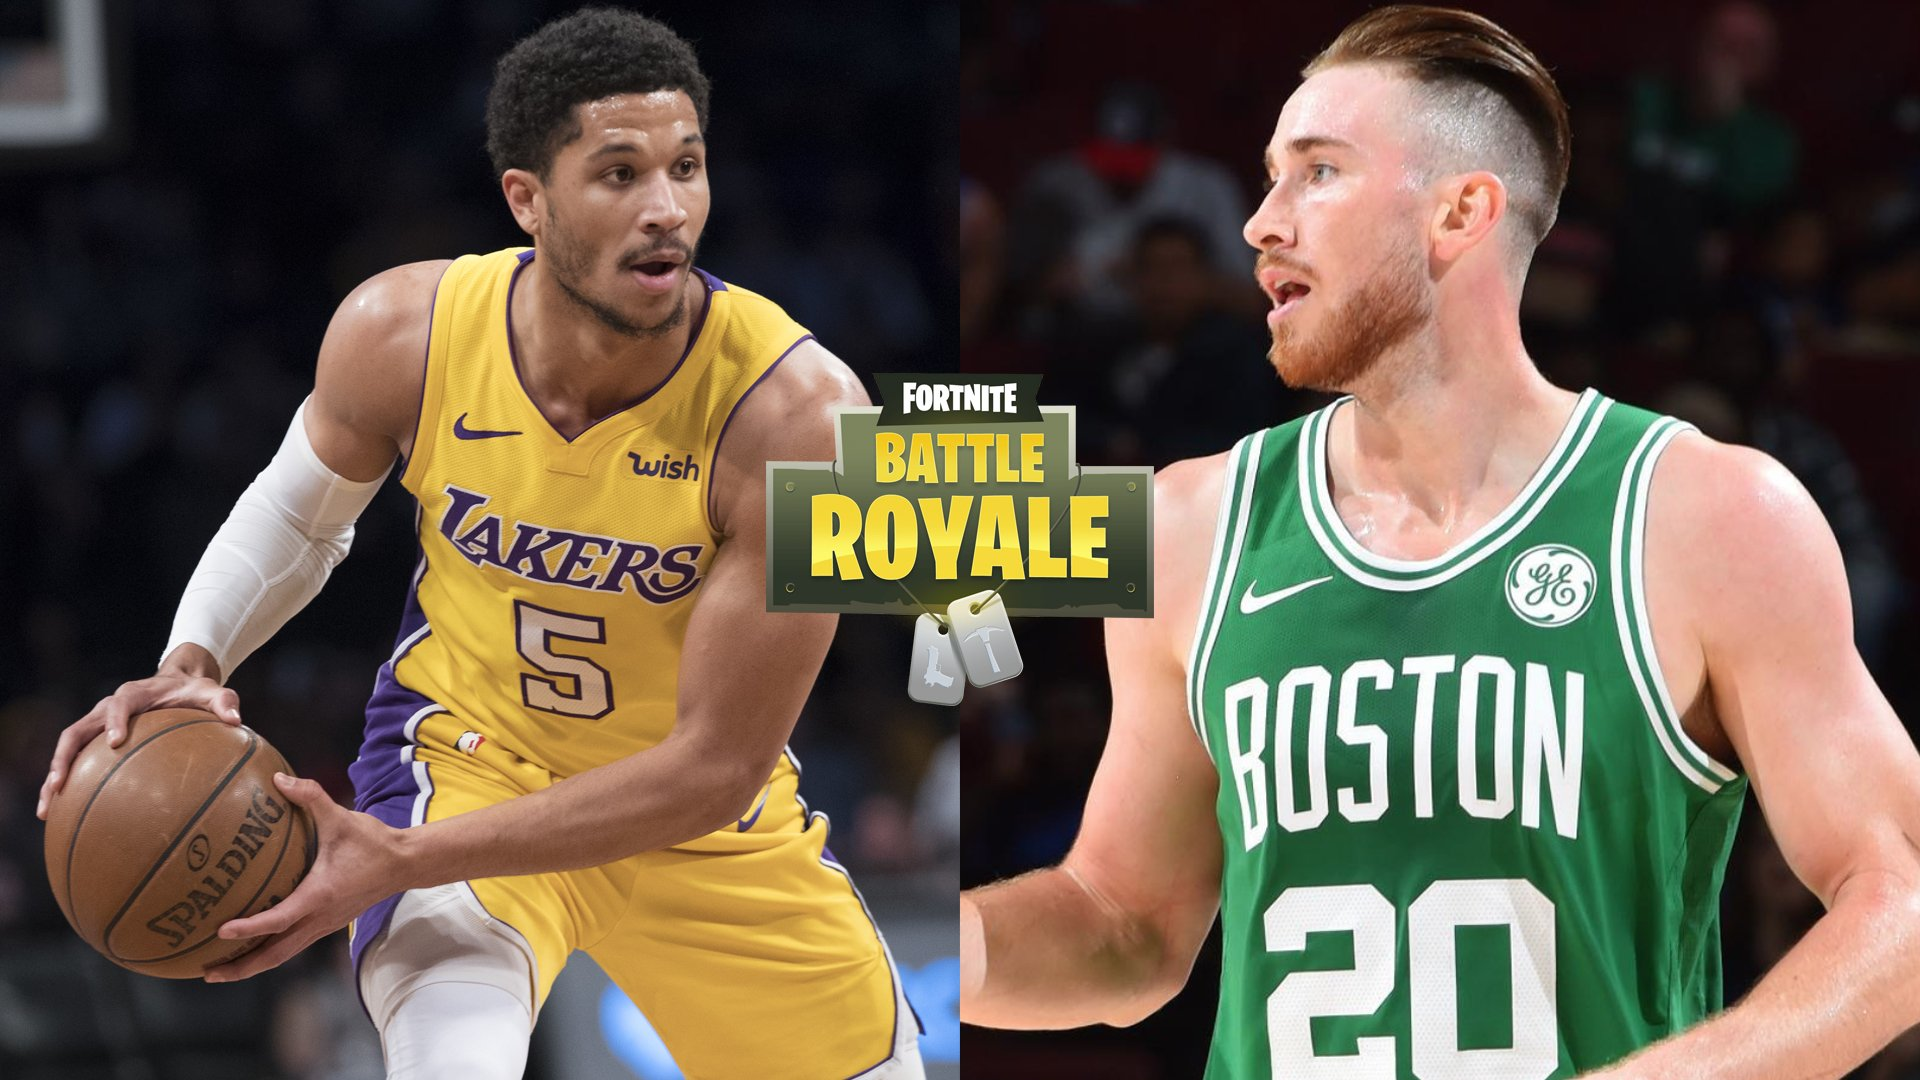 Who would root for in a Fortnite match between Josh Hart and Gordon Hayward?